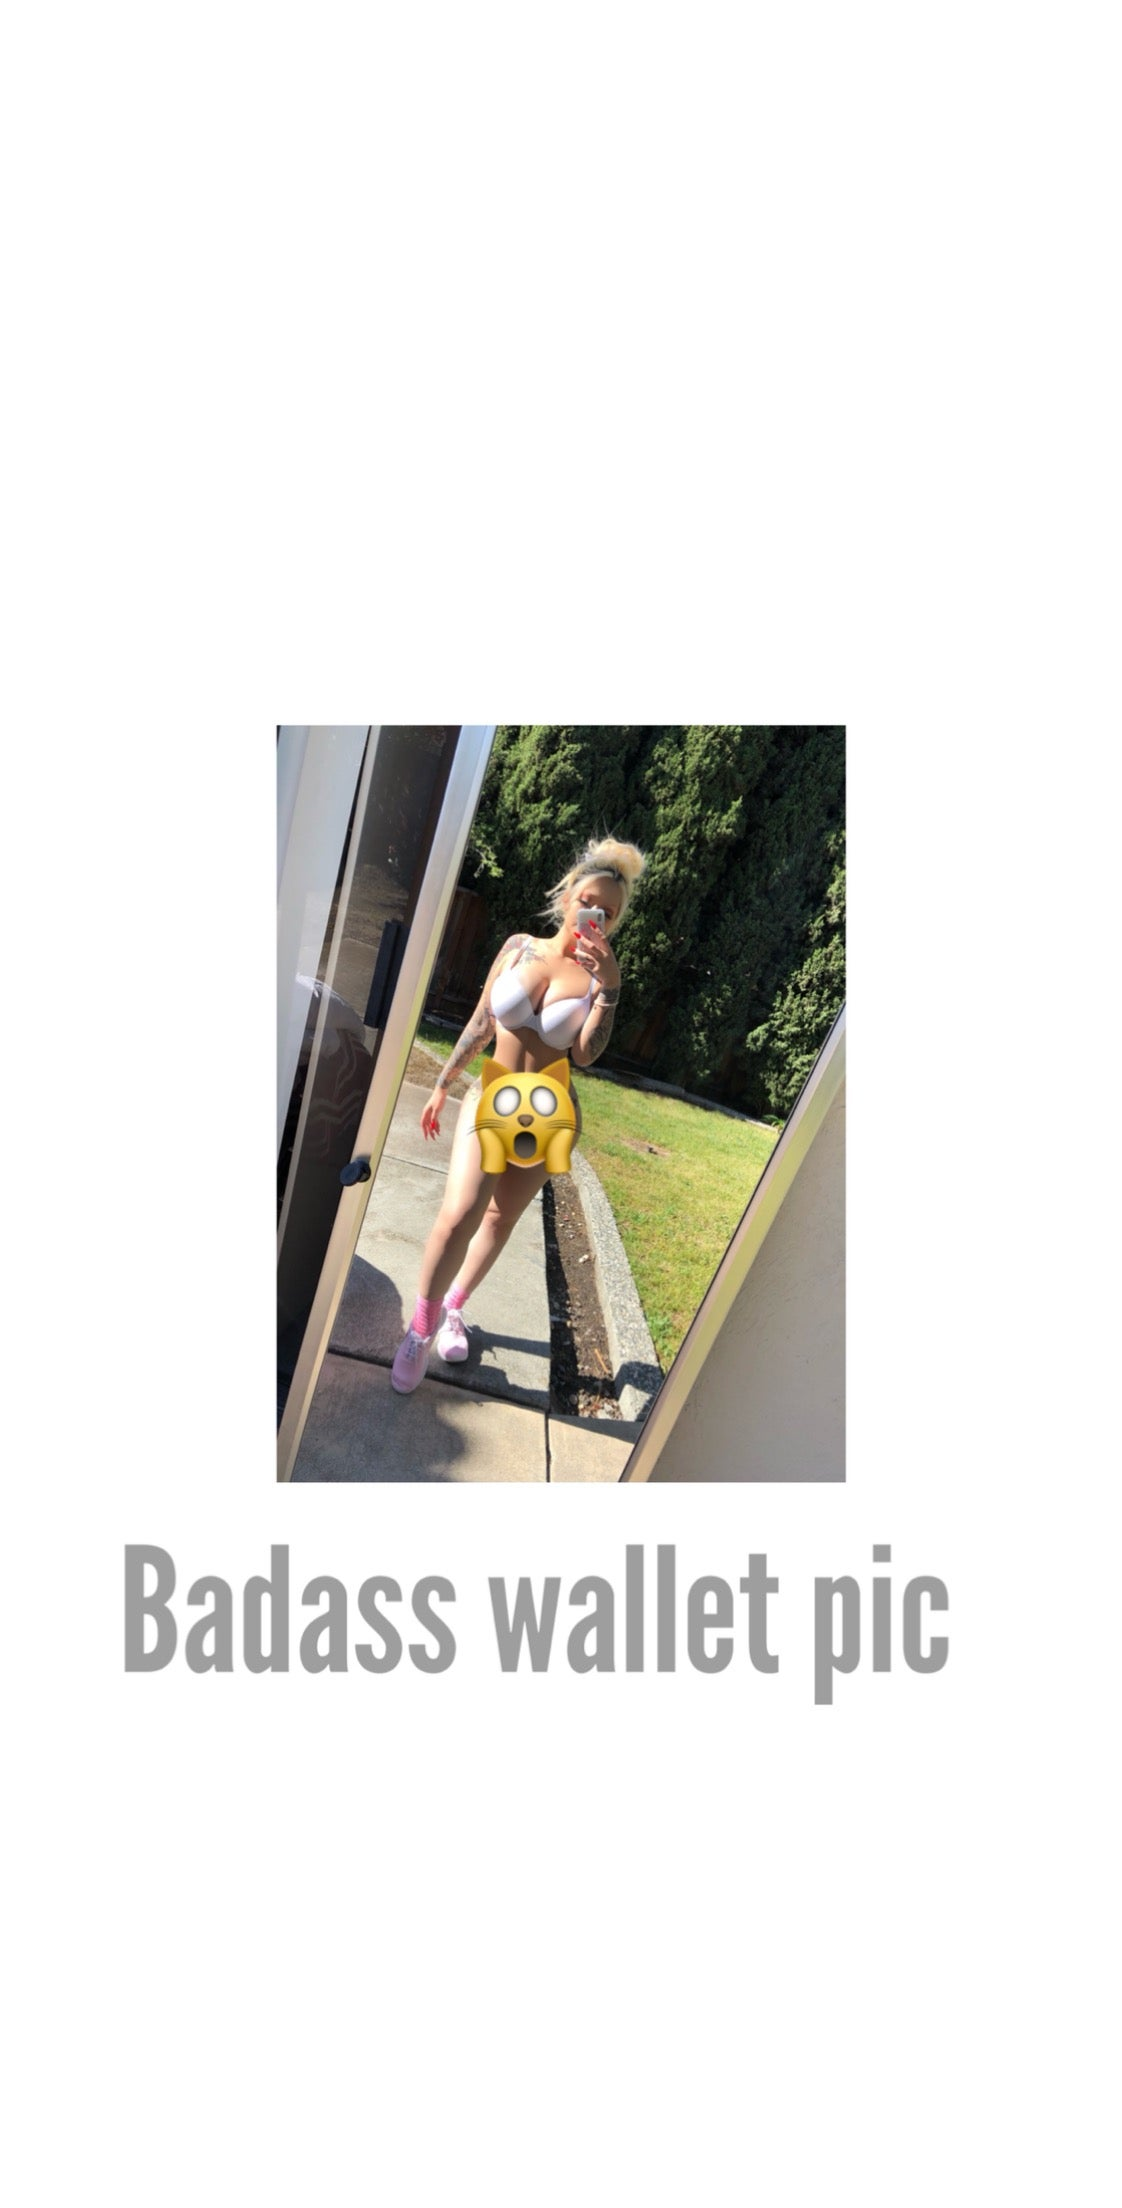 Image of Badass wallet picture